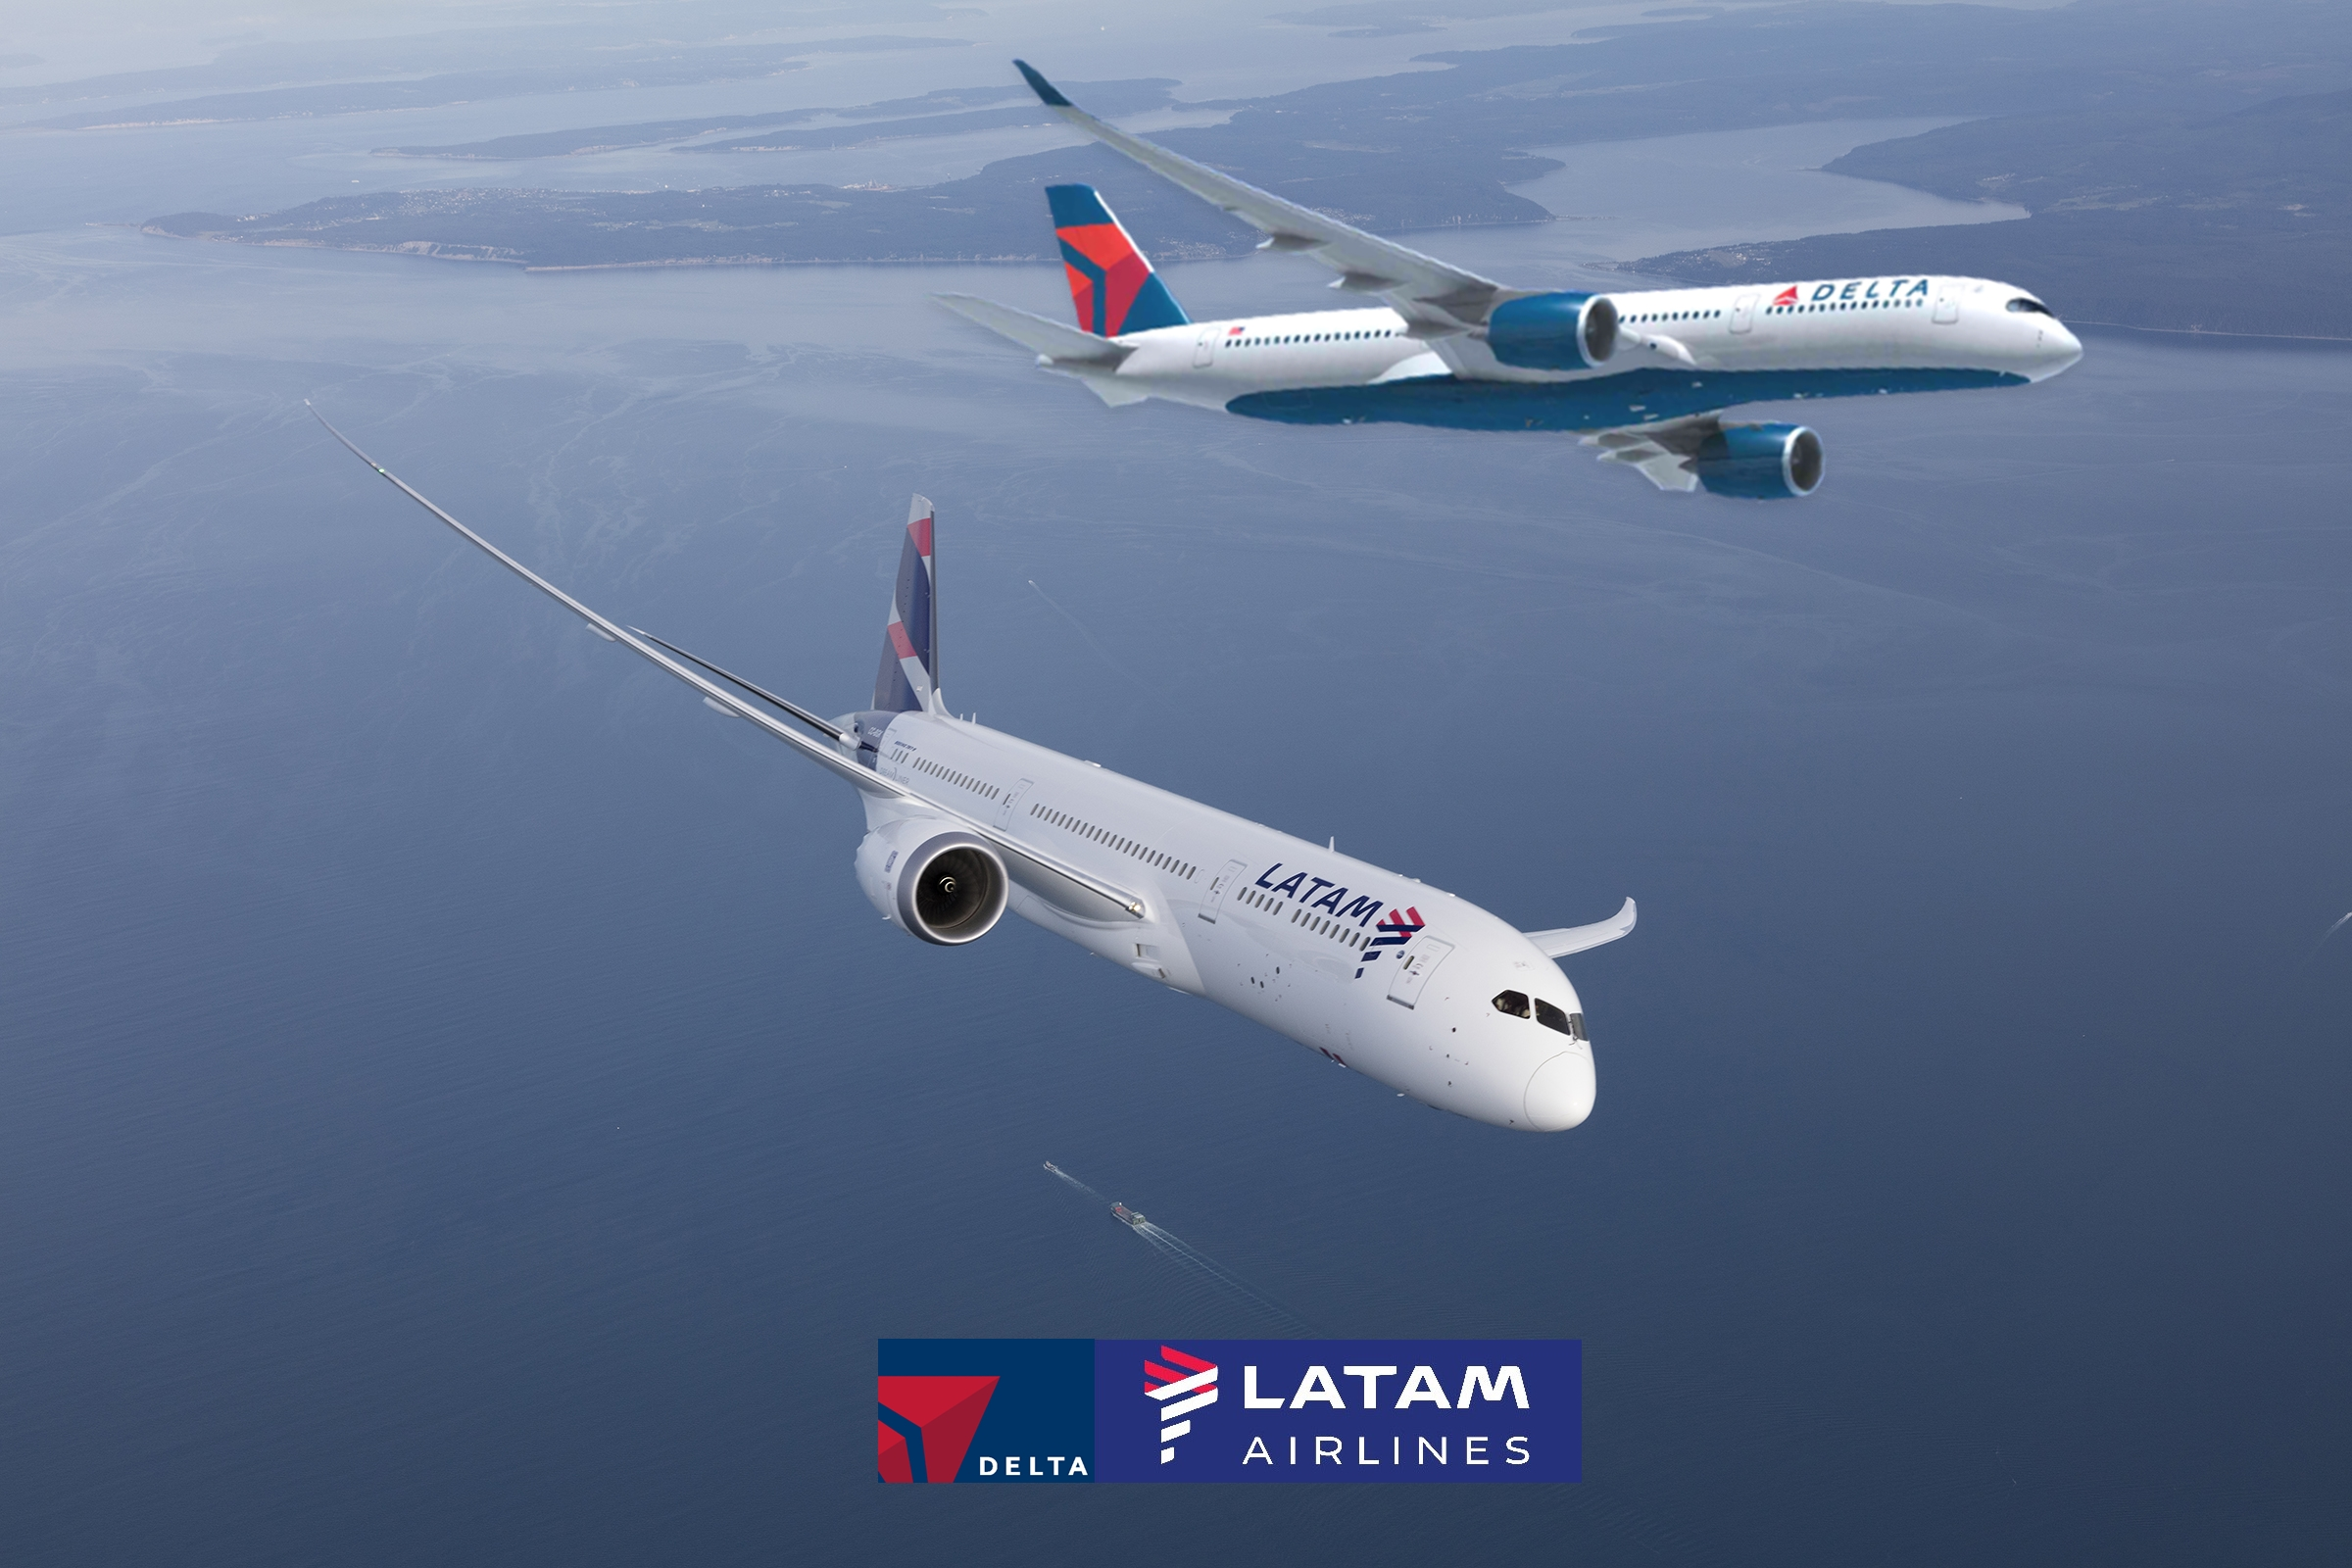 Delta adquisición 20% de Latam Group |